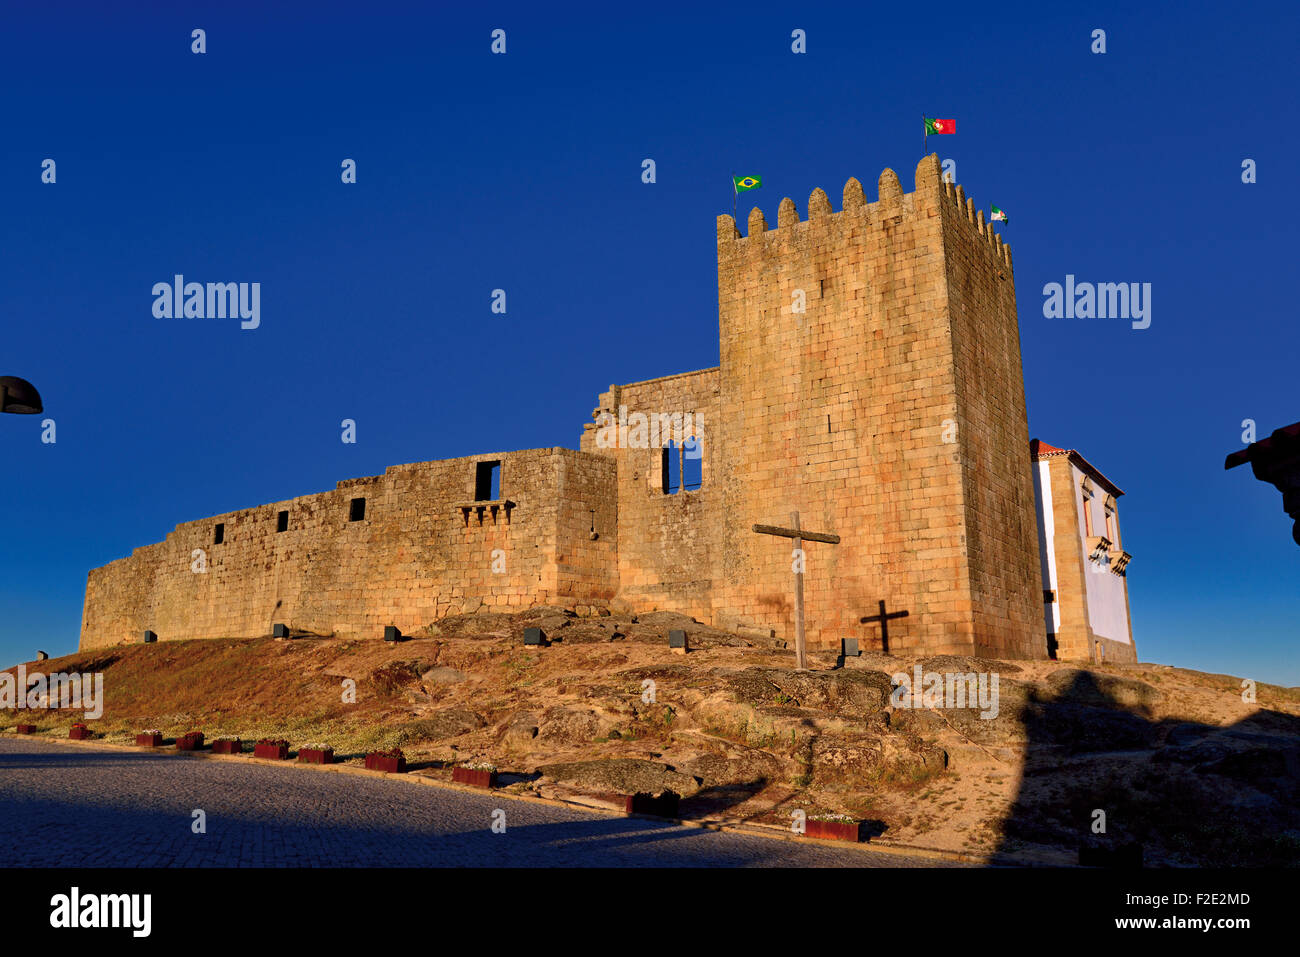 Portugal, Belmonte: Medieval castle and birth place of Brazil discoverer Pedro Alvares Cabral - Stock Image